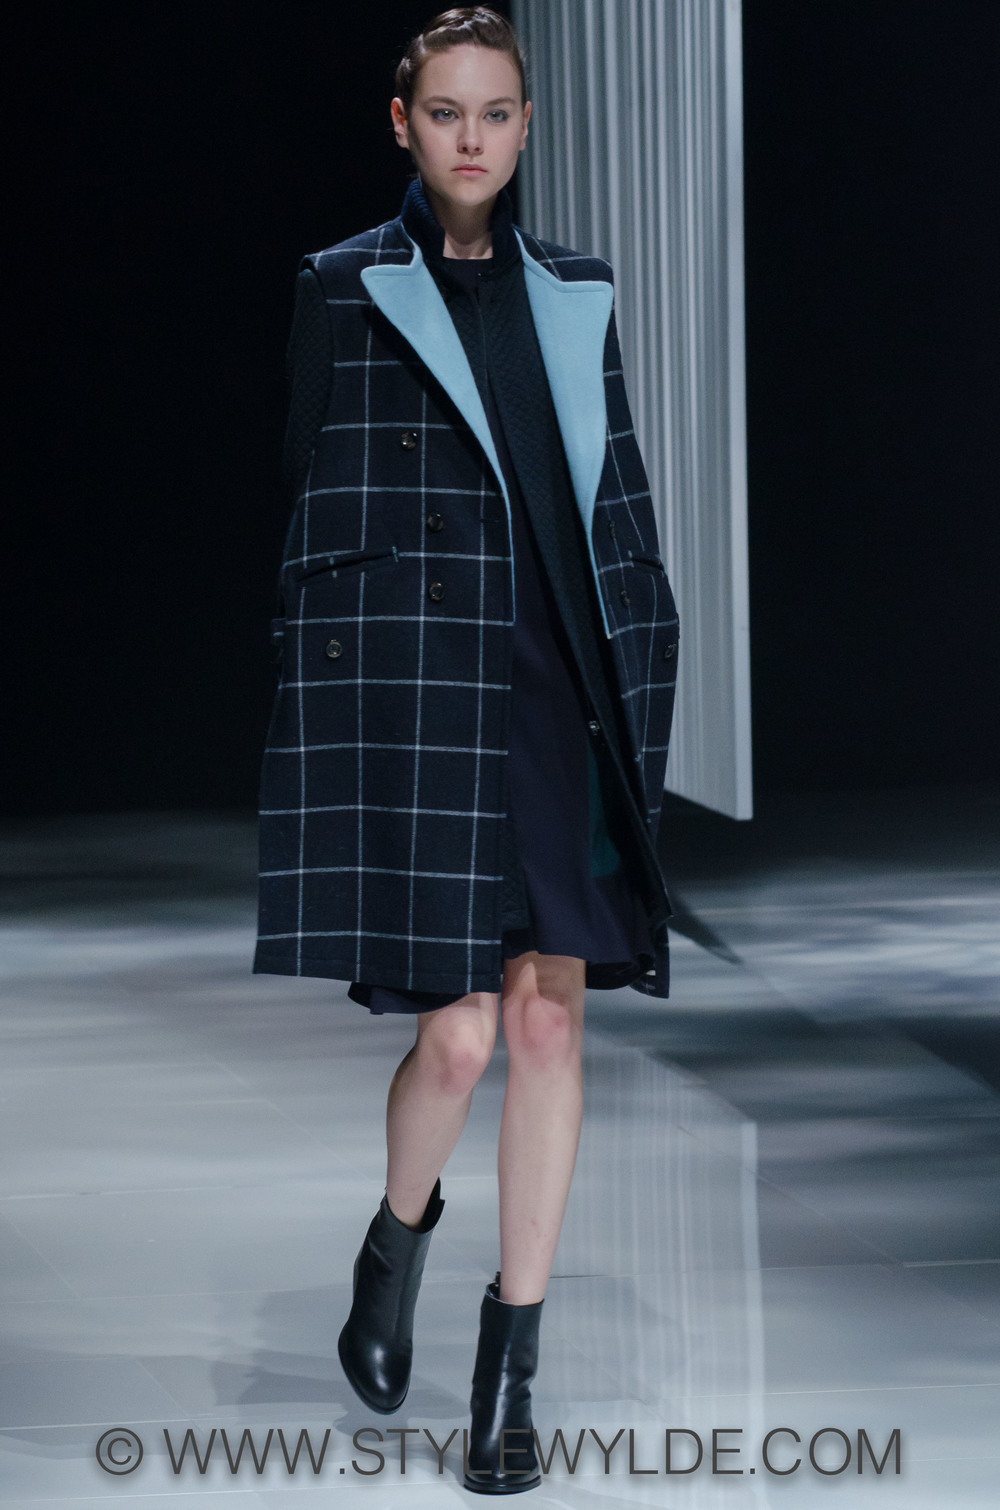 StyleWylde_Ujoh_AW14_story (1 of 1)-8.jpg